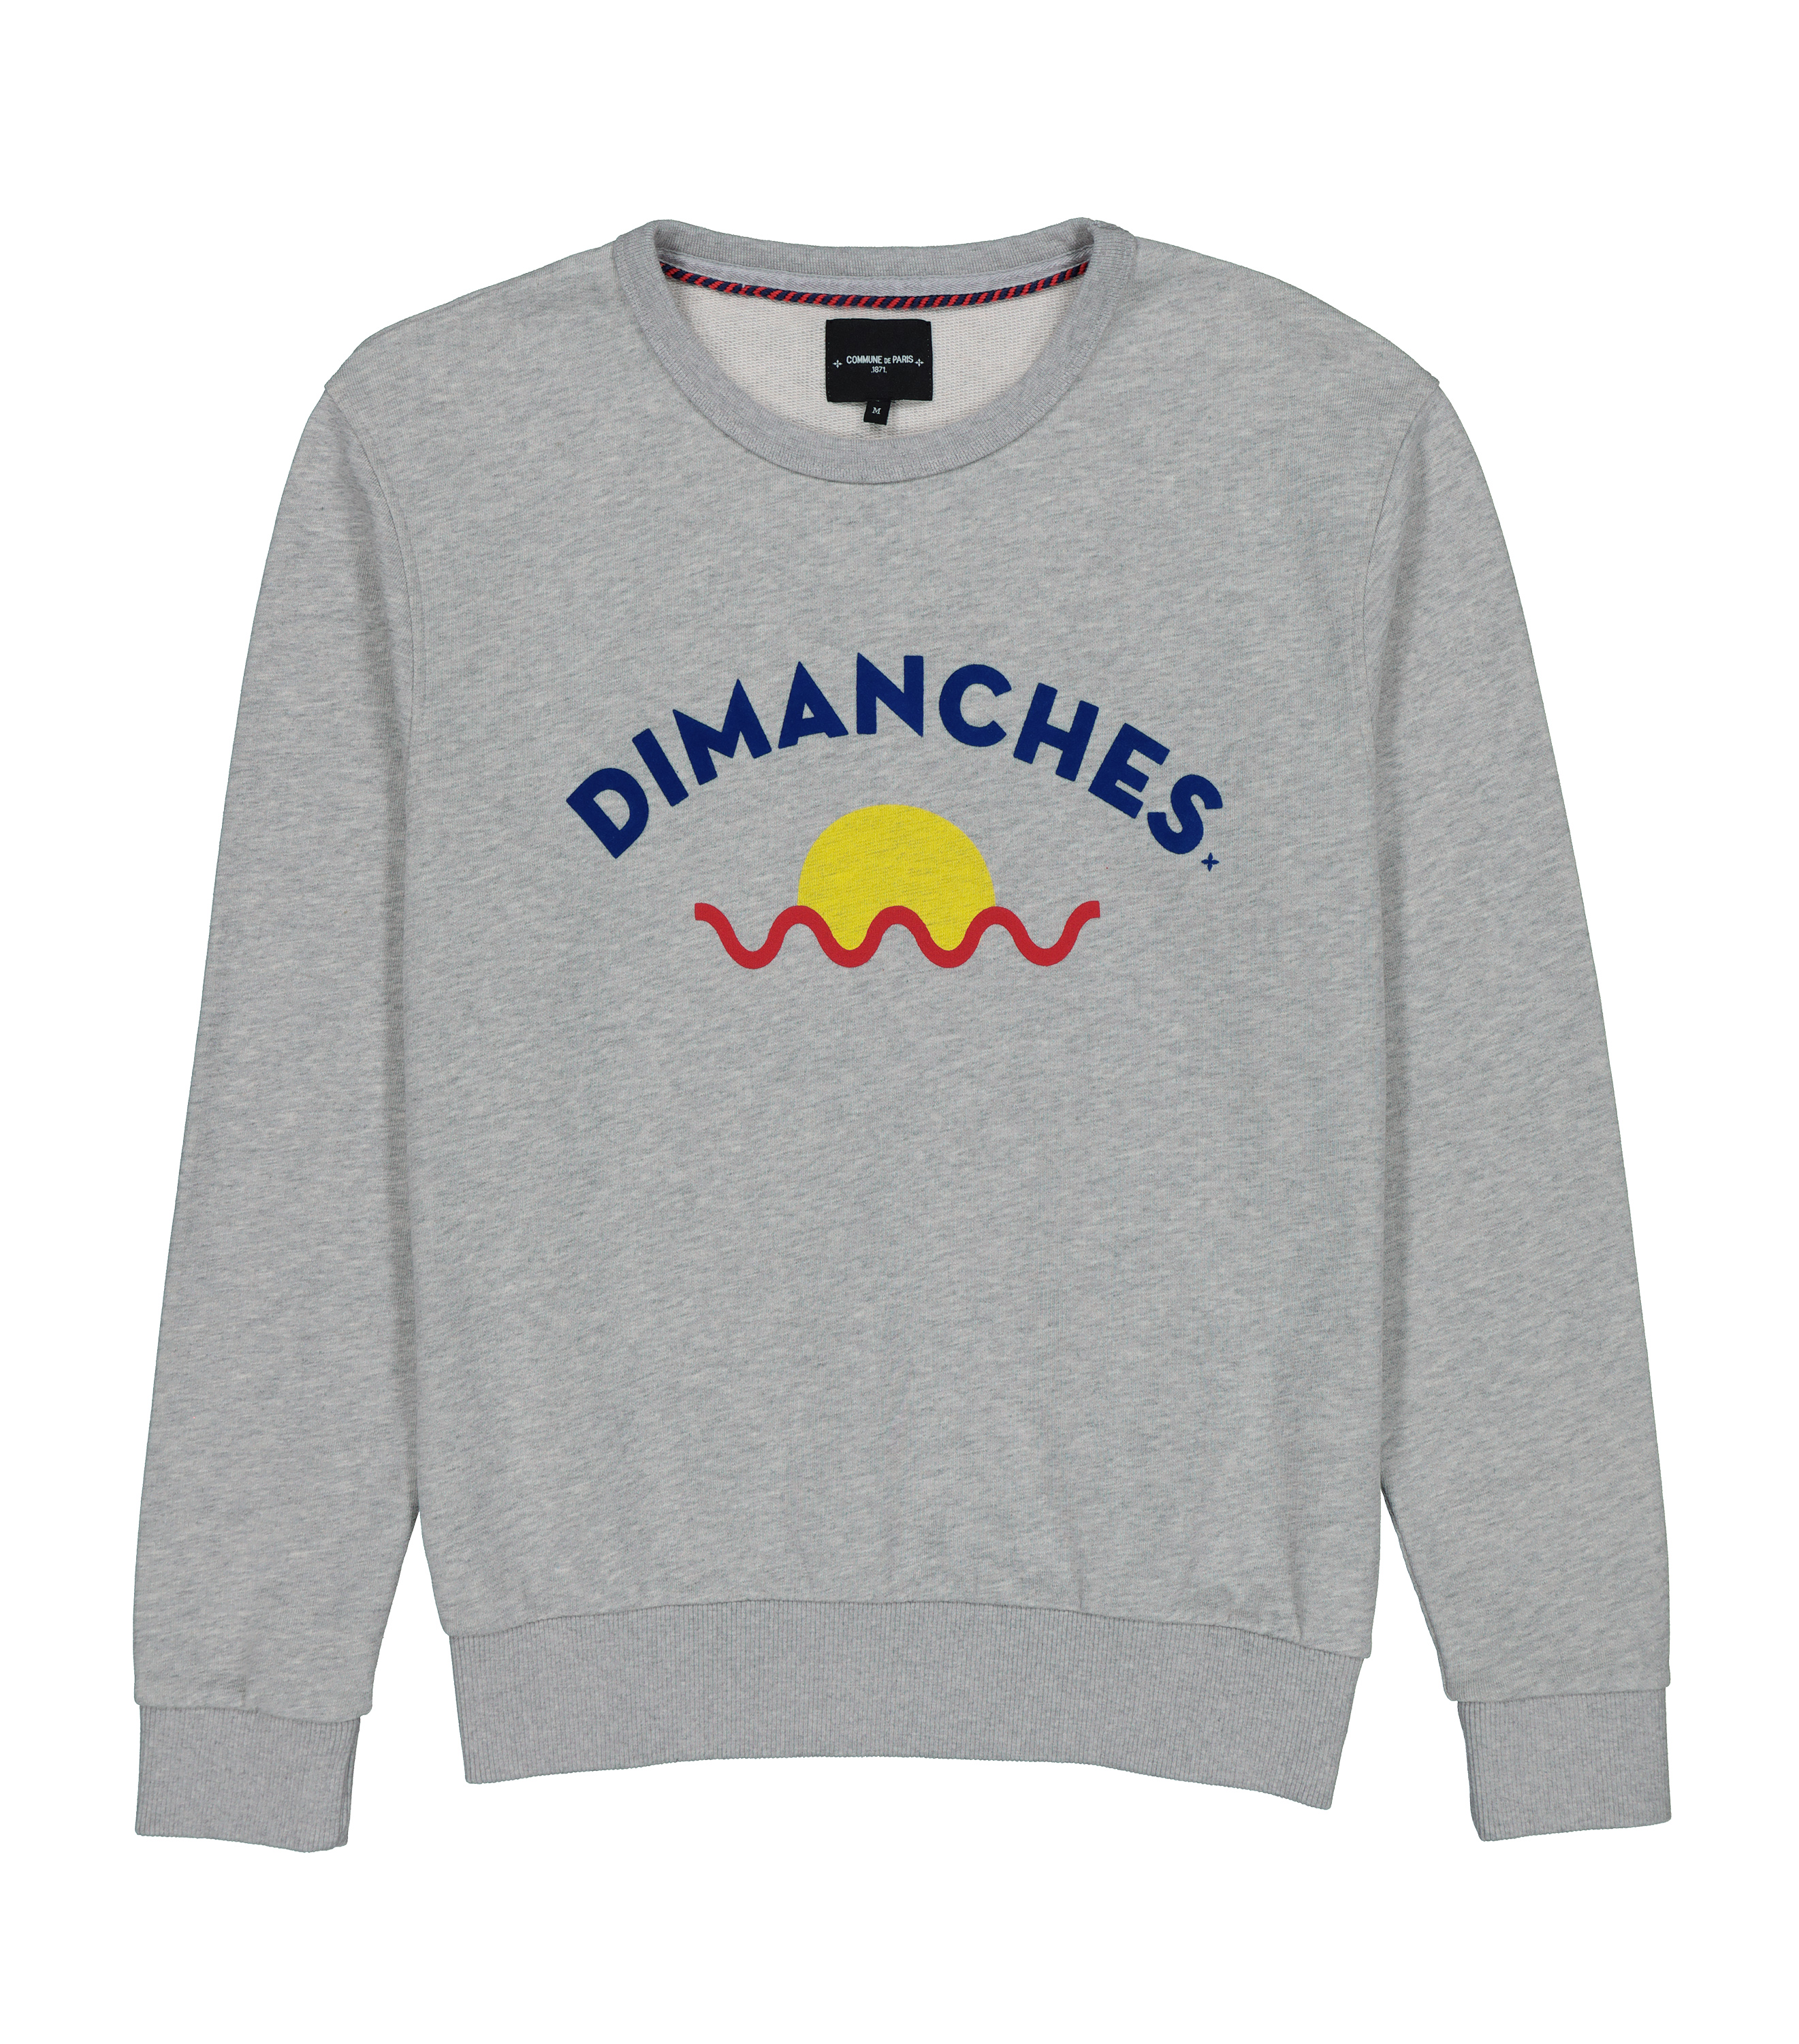 SWEAT DIMANCHES SUN - Marl grey